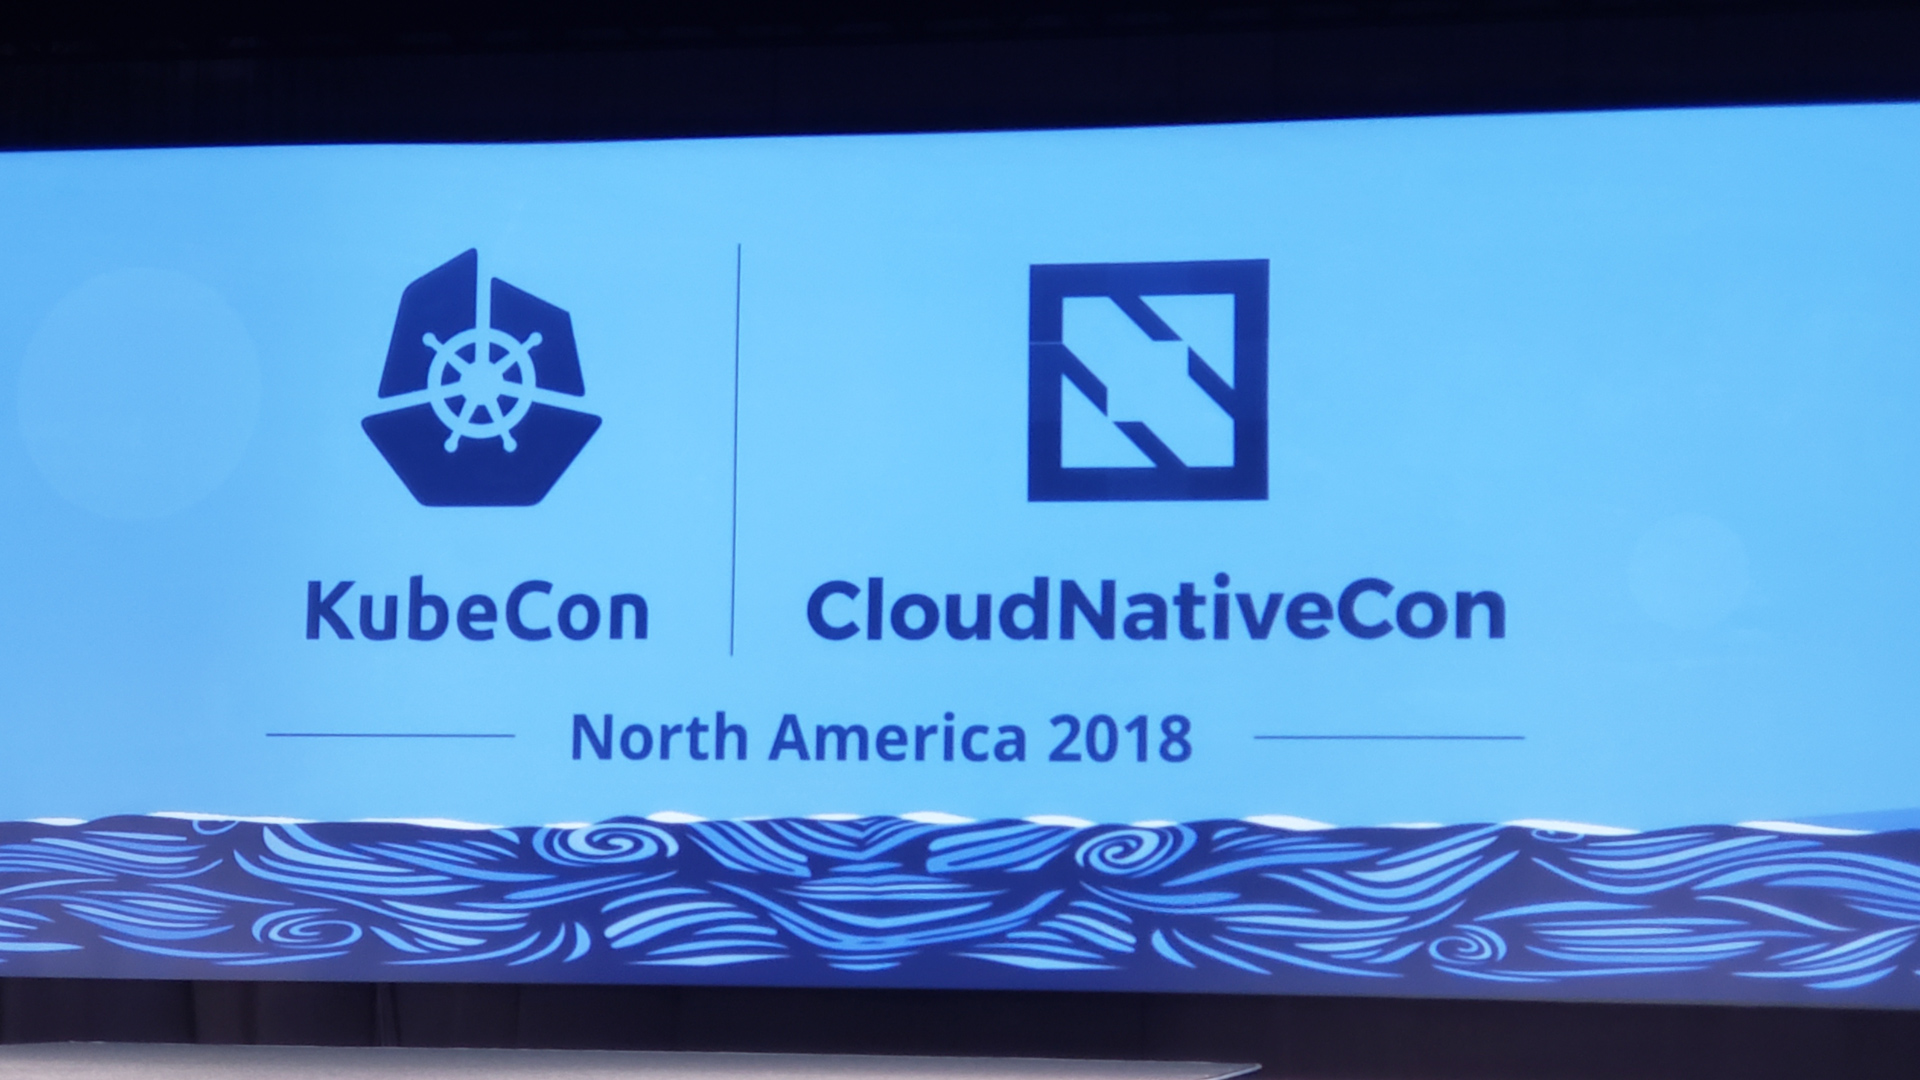 Enterprise Momentum for Kubernetes at KubeCon 2018 (Video)